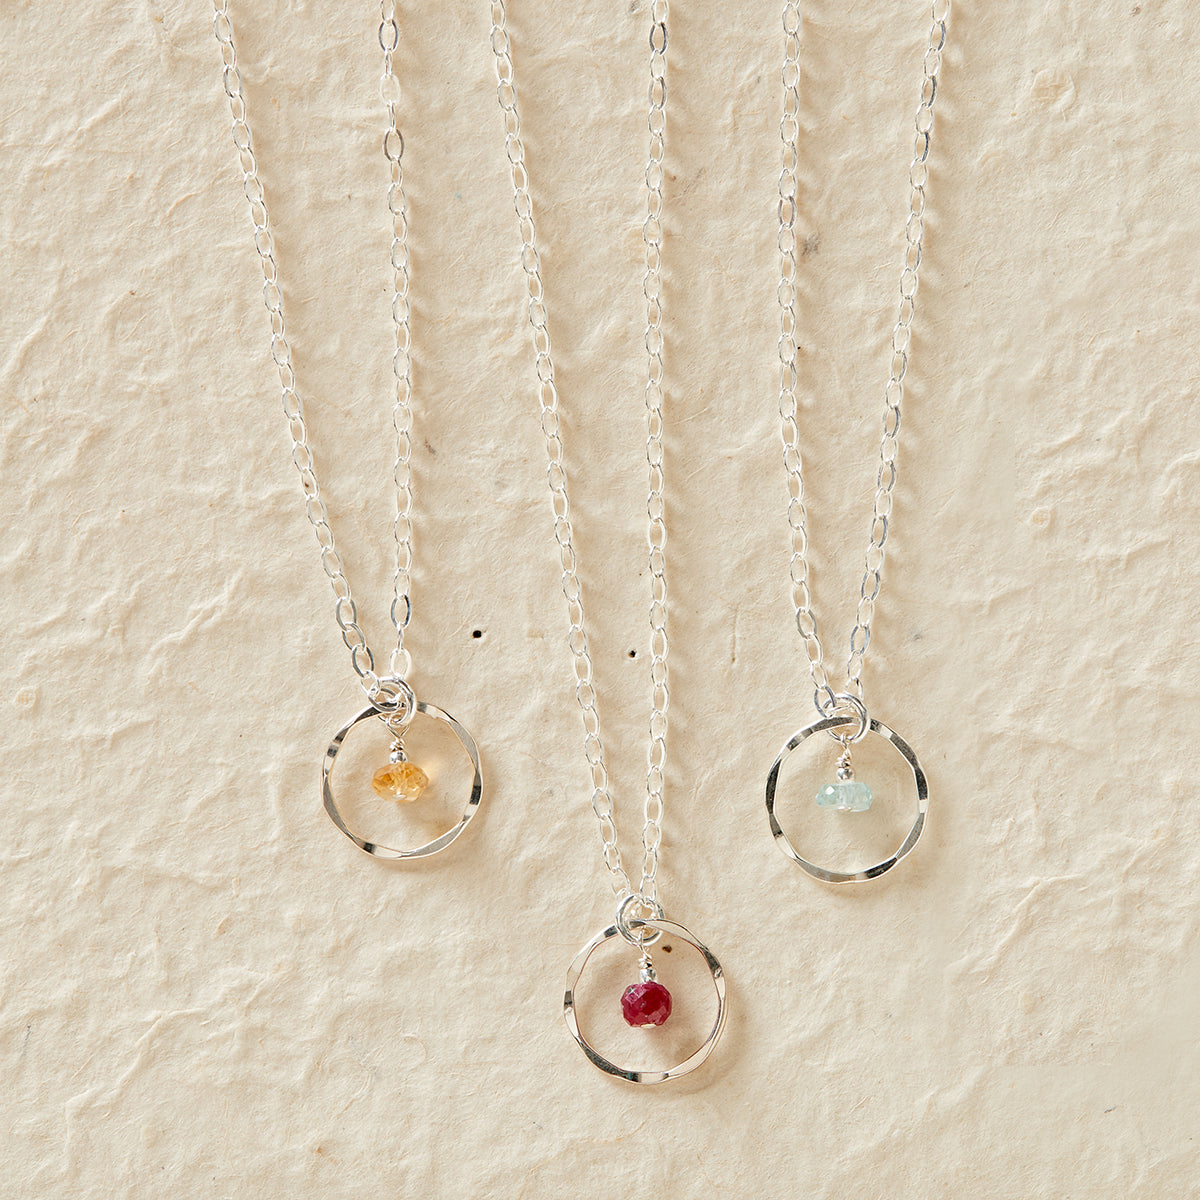 Faceted Birthstone Necklace